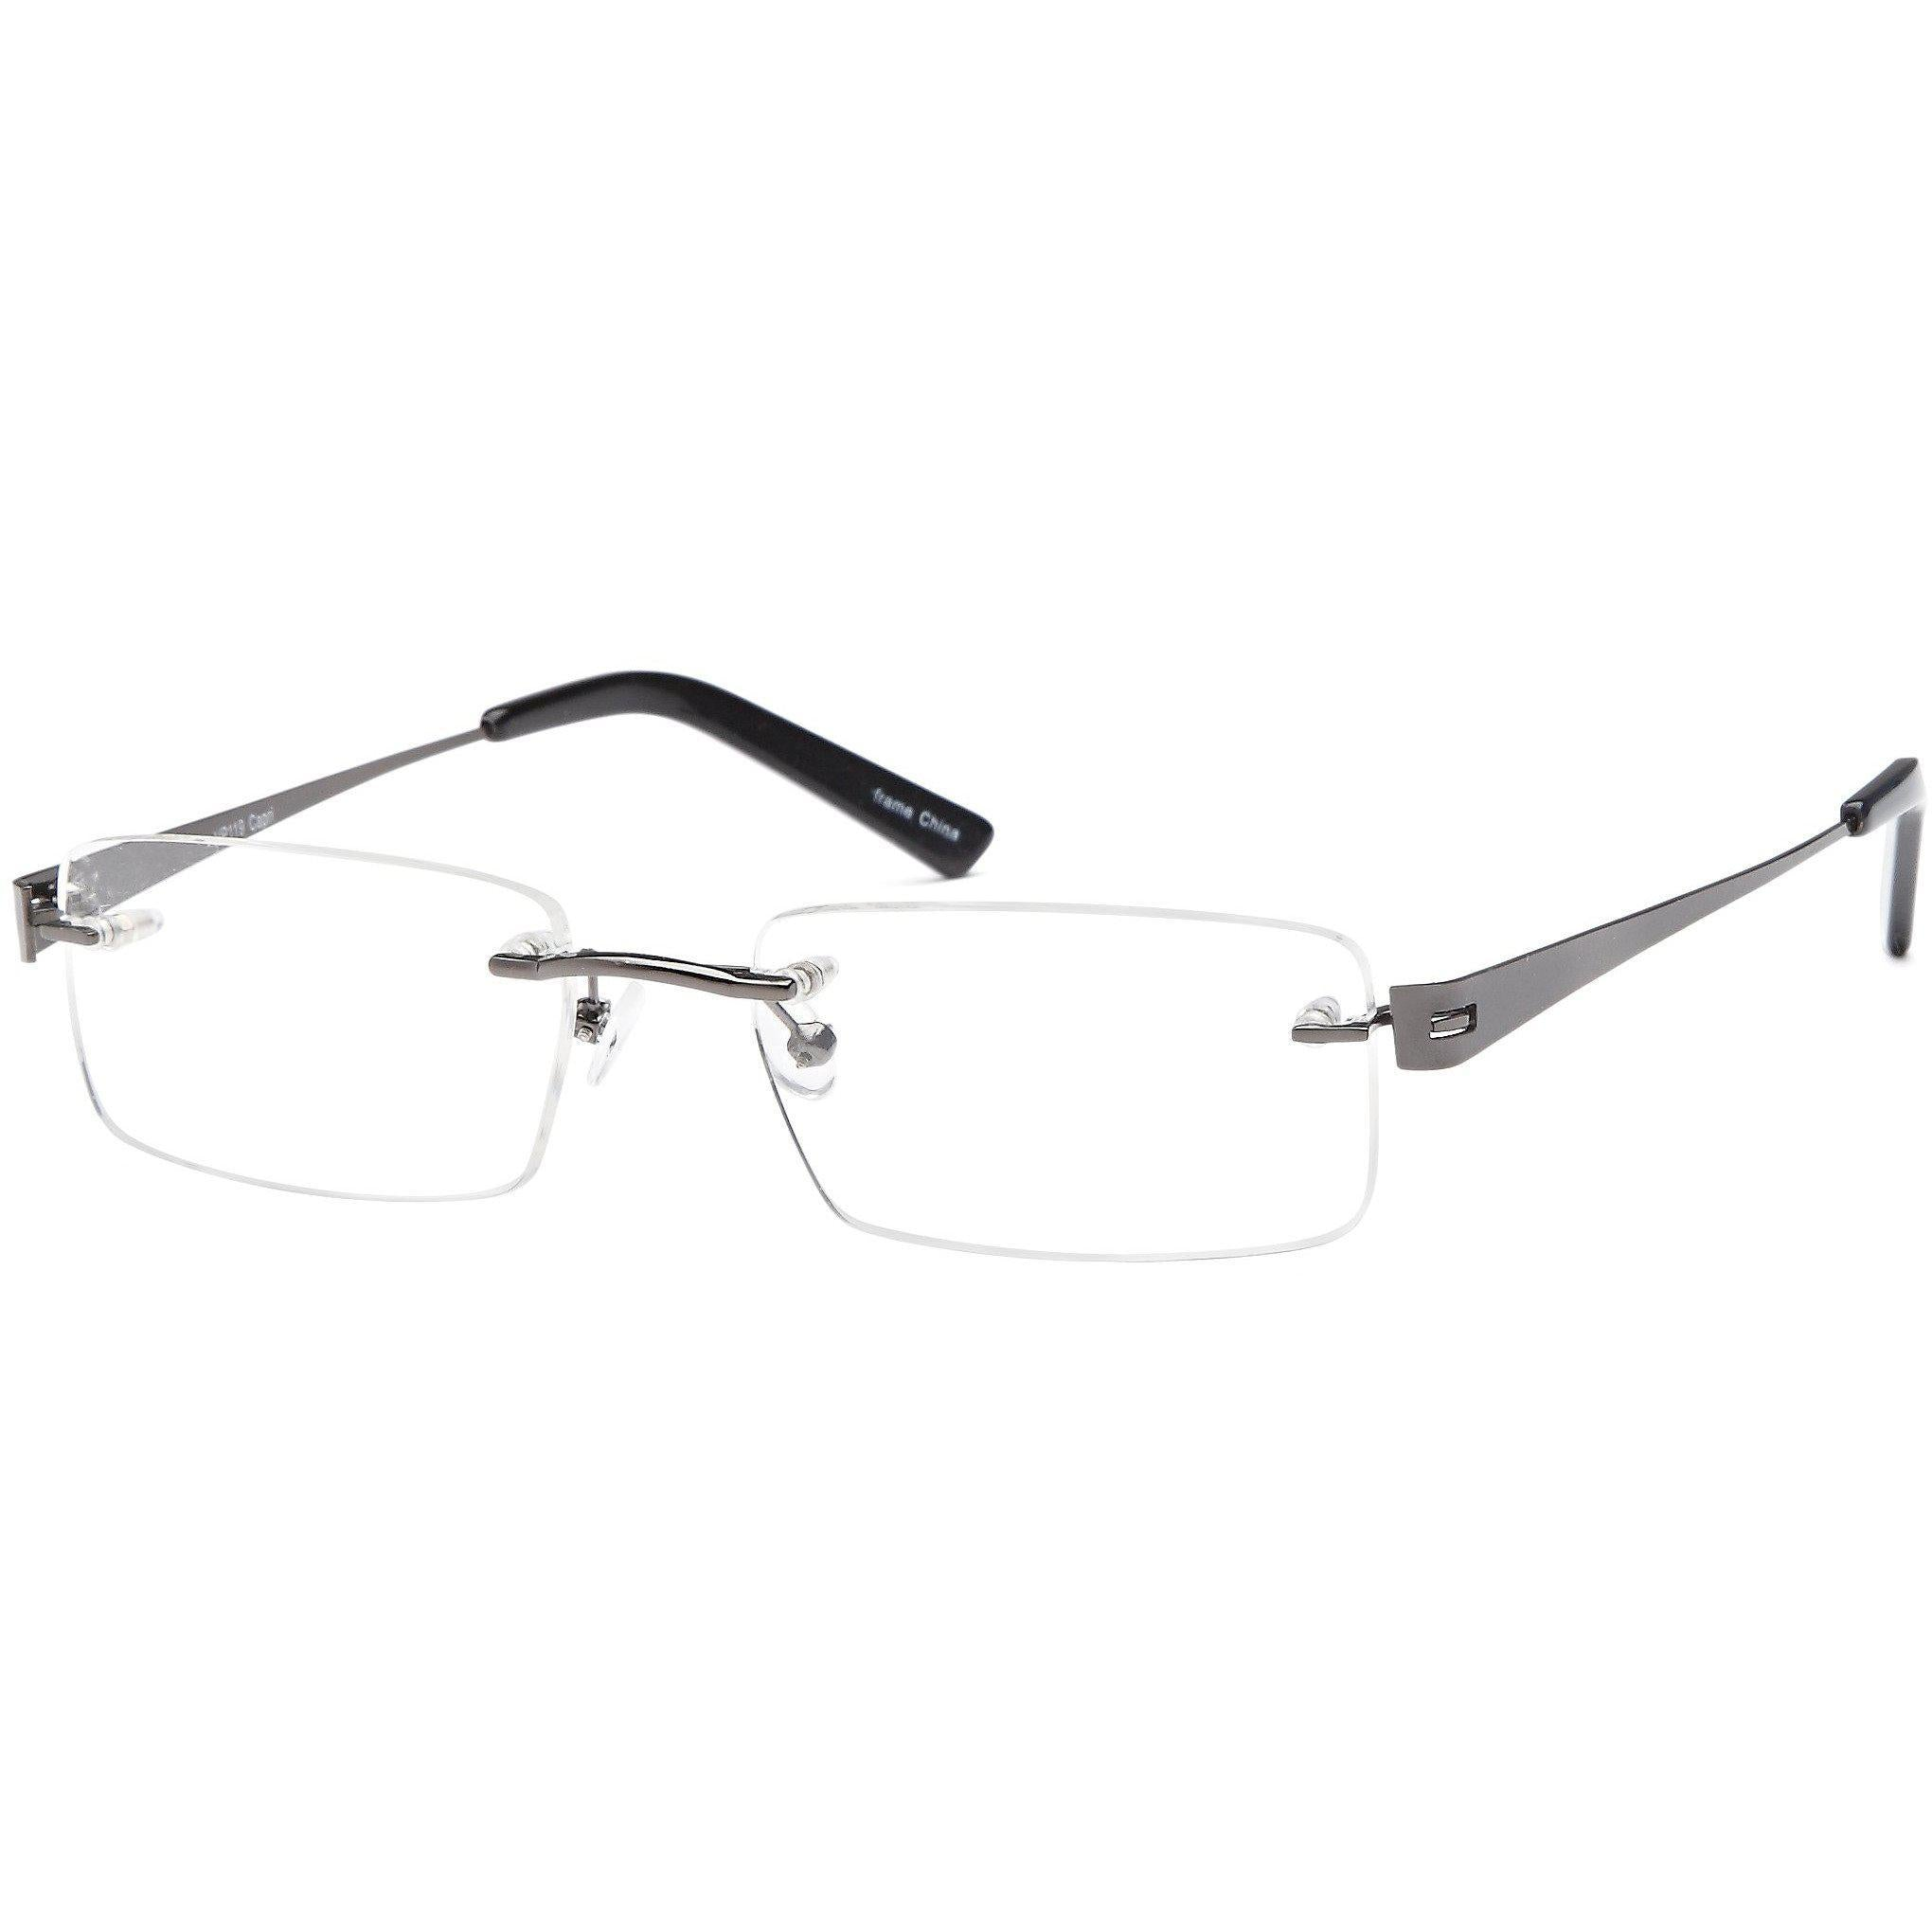 Classics Prescription Glasses VP 119 Frames